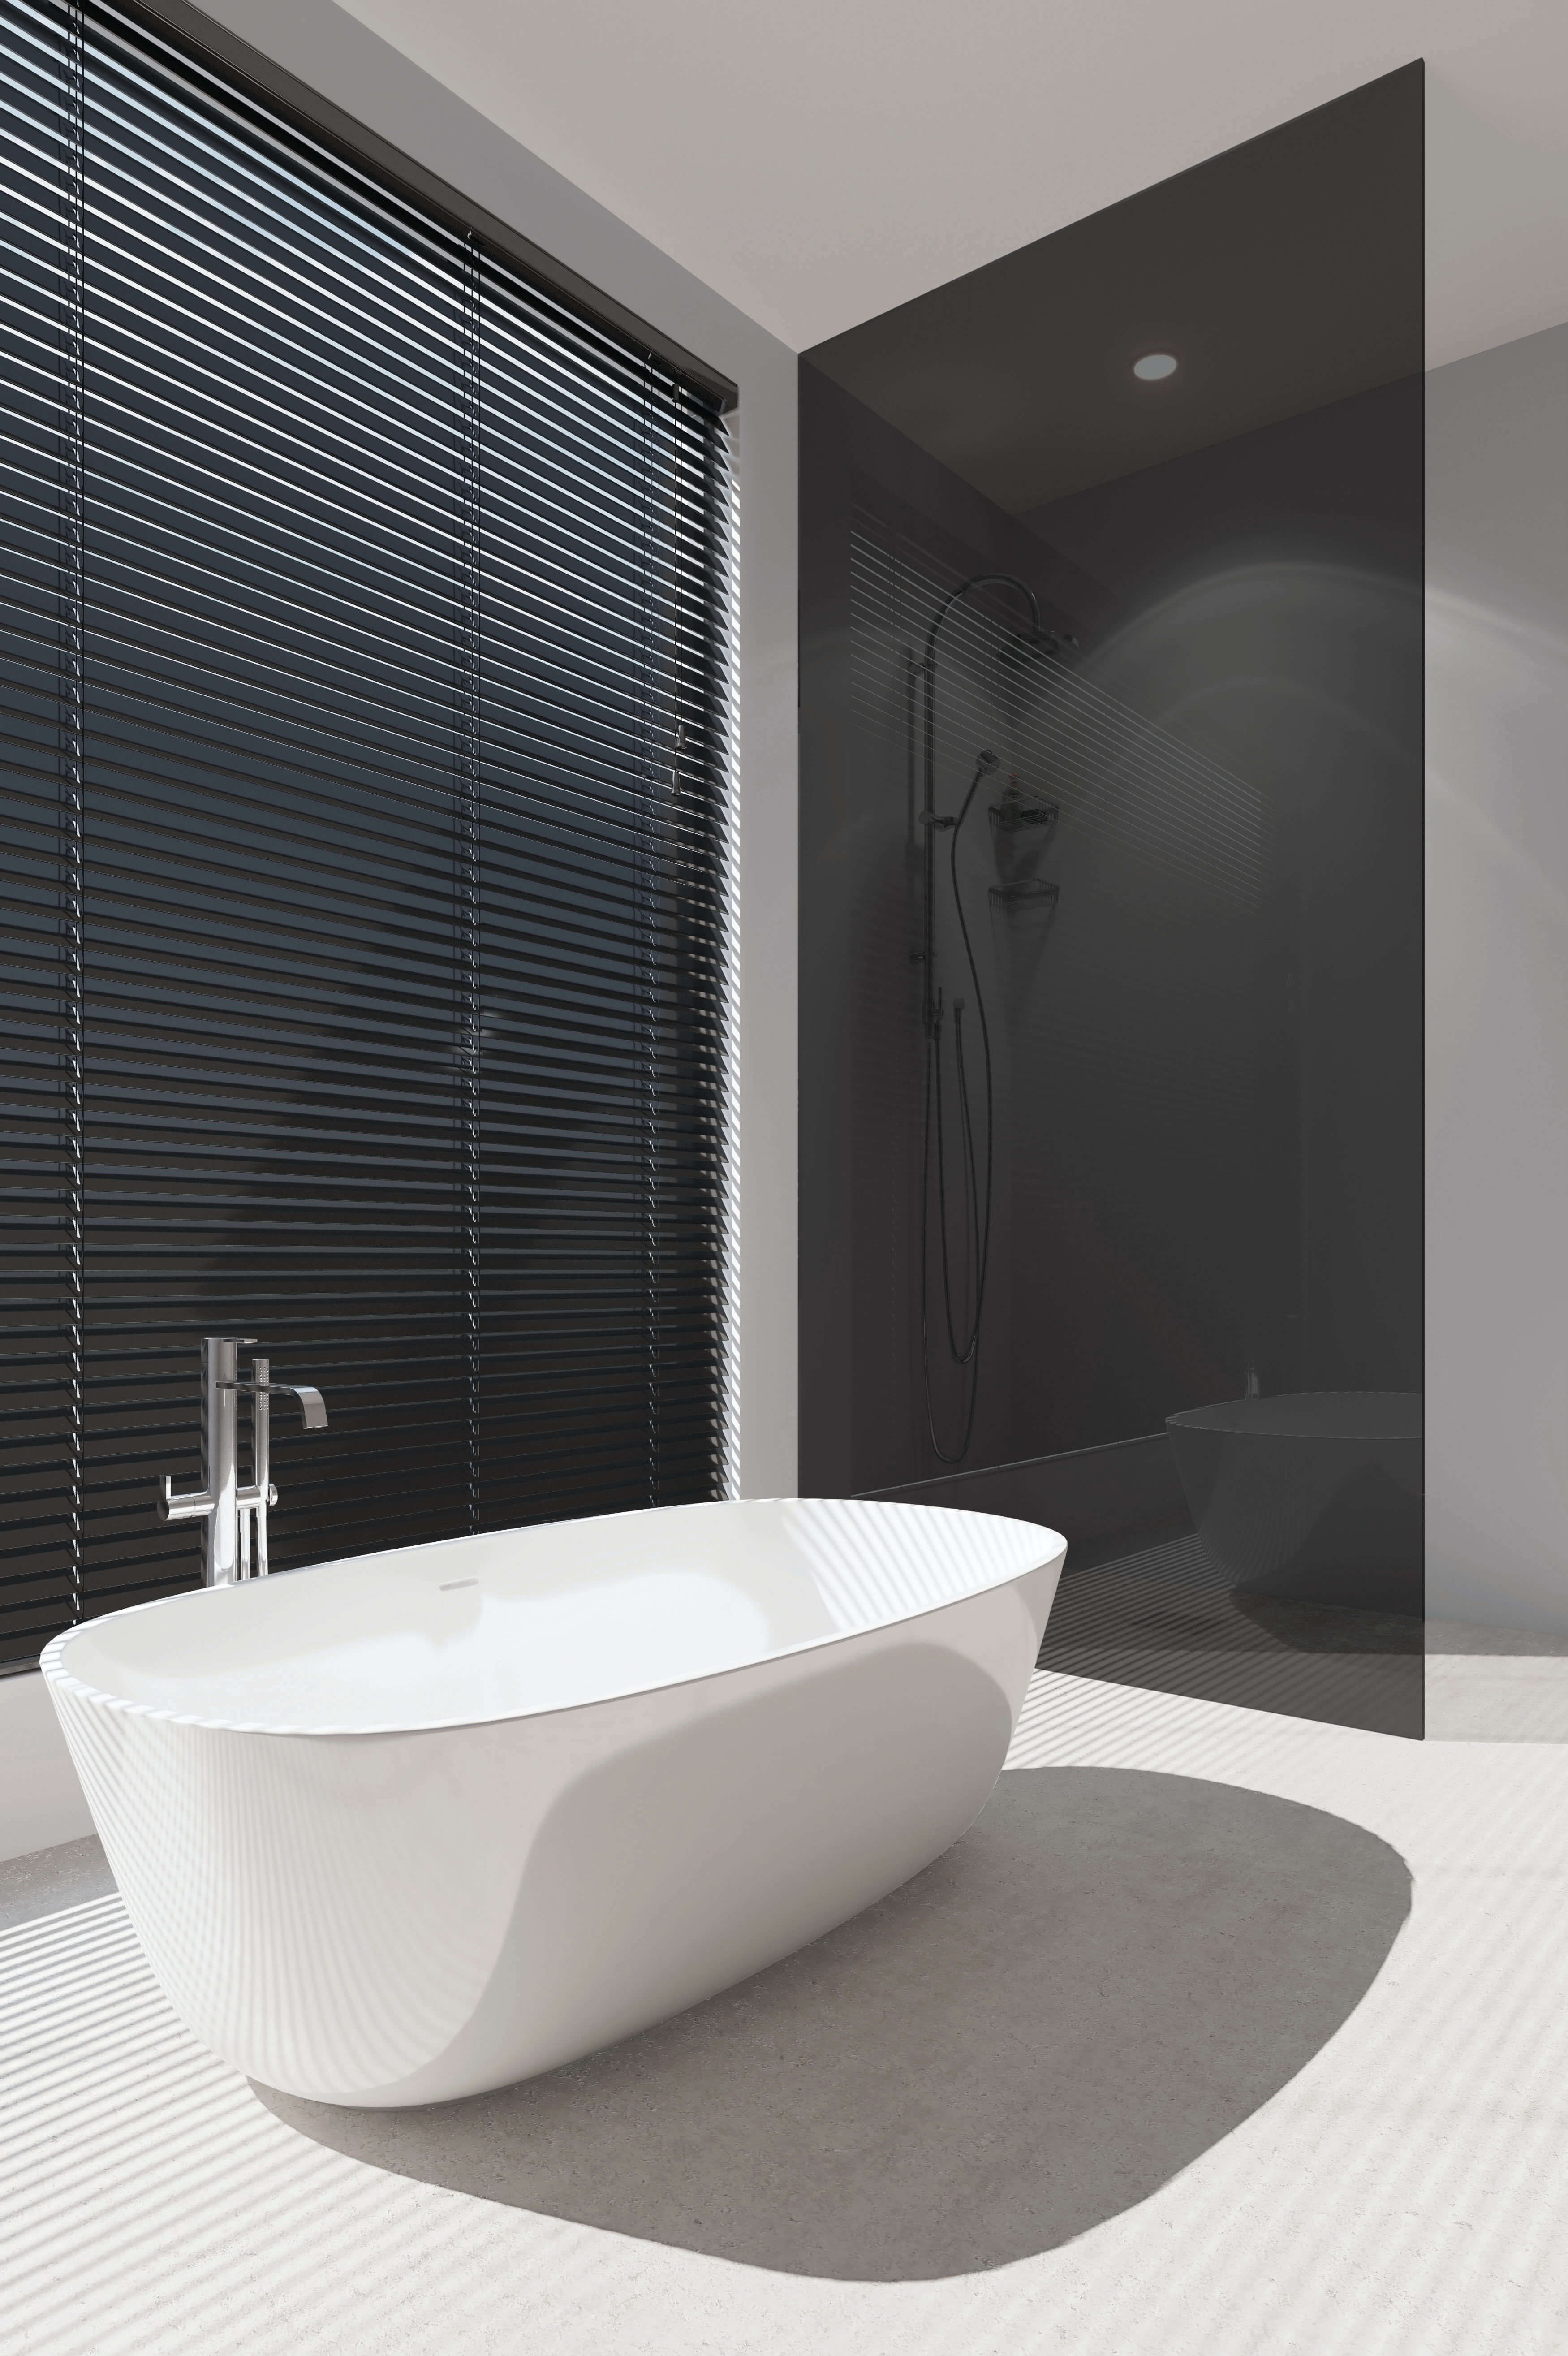 vision blinds - Littlehampton Blinds